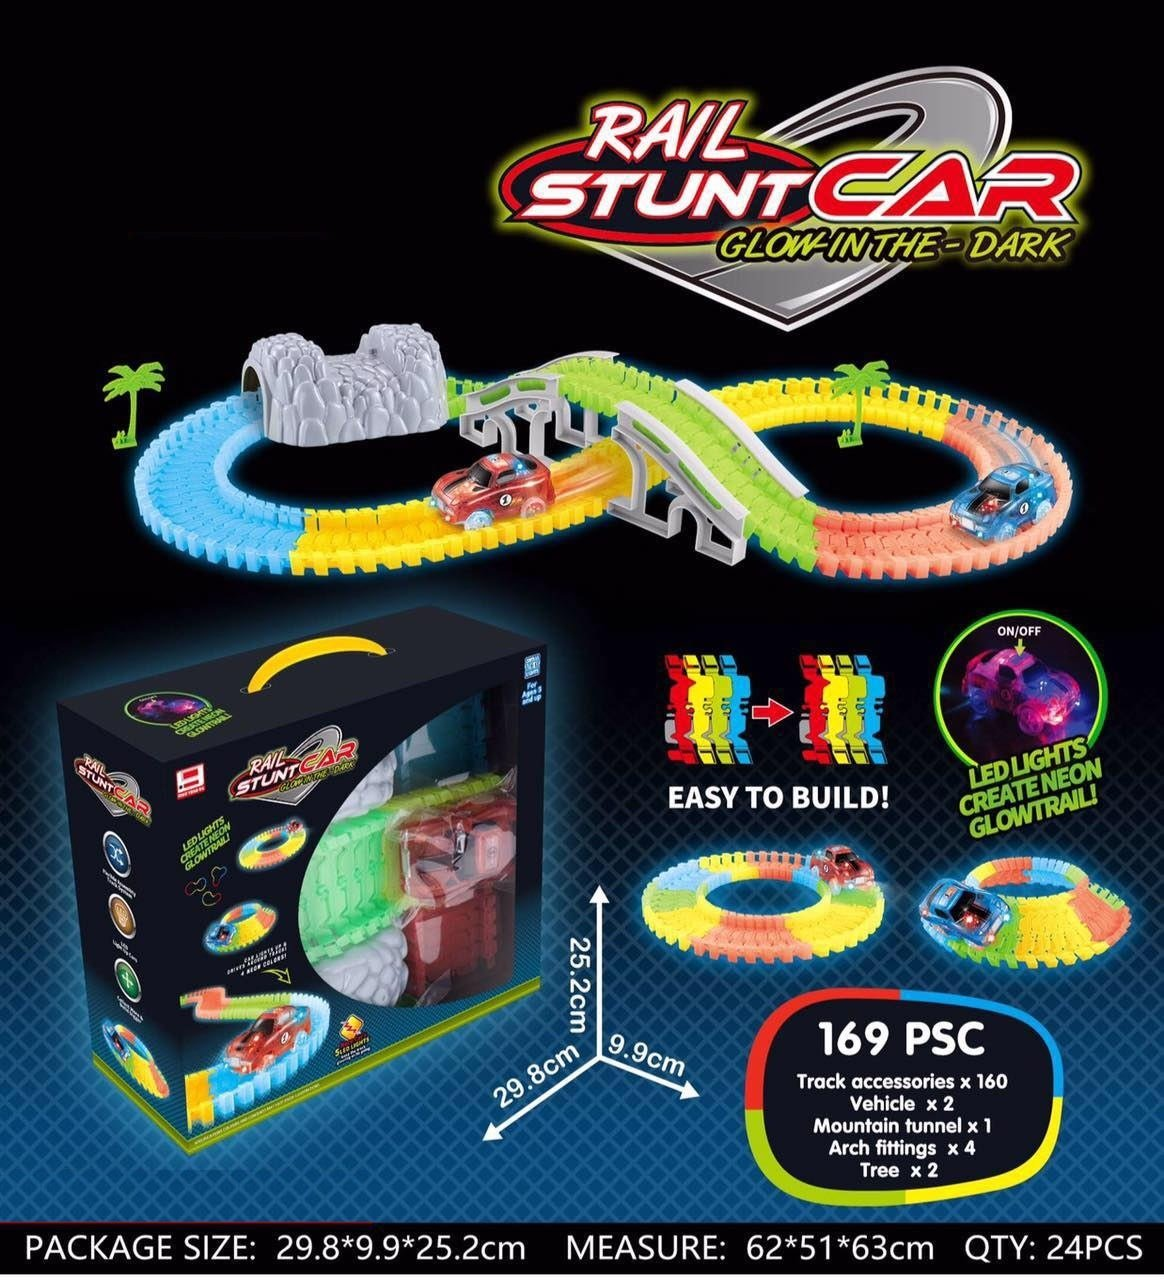 Playlearn Glow In The Dark Magic Track '2 LED CARS, BRIDGE, TREES & TUNNEL' Flexible Electric Car Racetrack for Kids TREES & TUNNEL Flexible Electric Car Racetrack for Kids